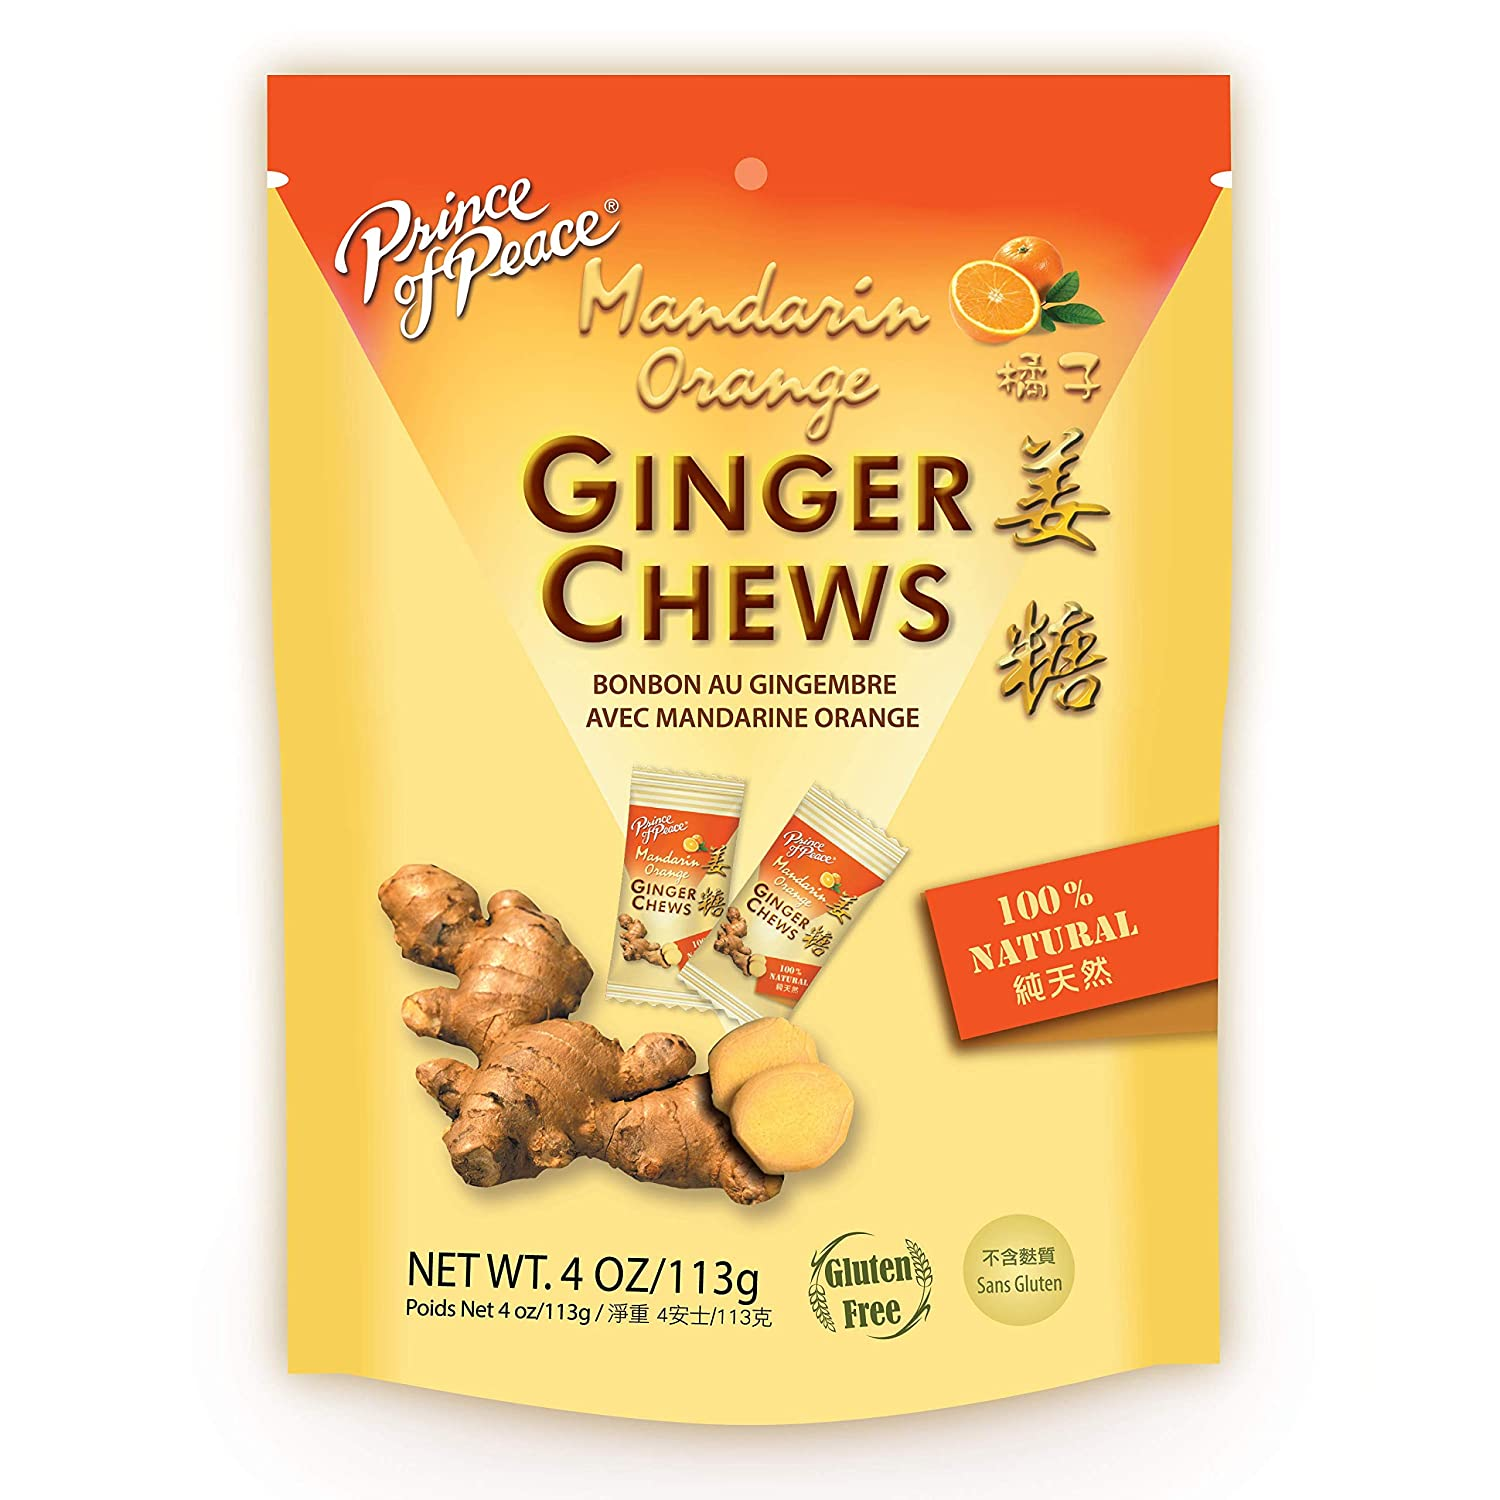 Prince of Peace Ginger Chews with Mandarin Orange, 4 oz. – Candied Ginger – Orange Candy – Orange Ginger Chews – Natural Candy – Ginger Candy for Nausea